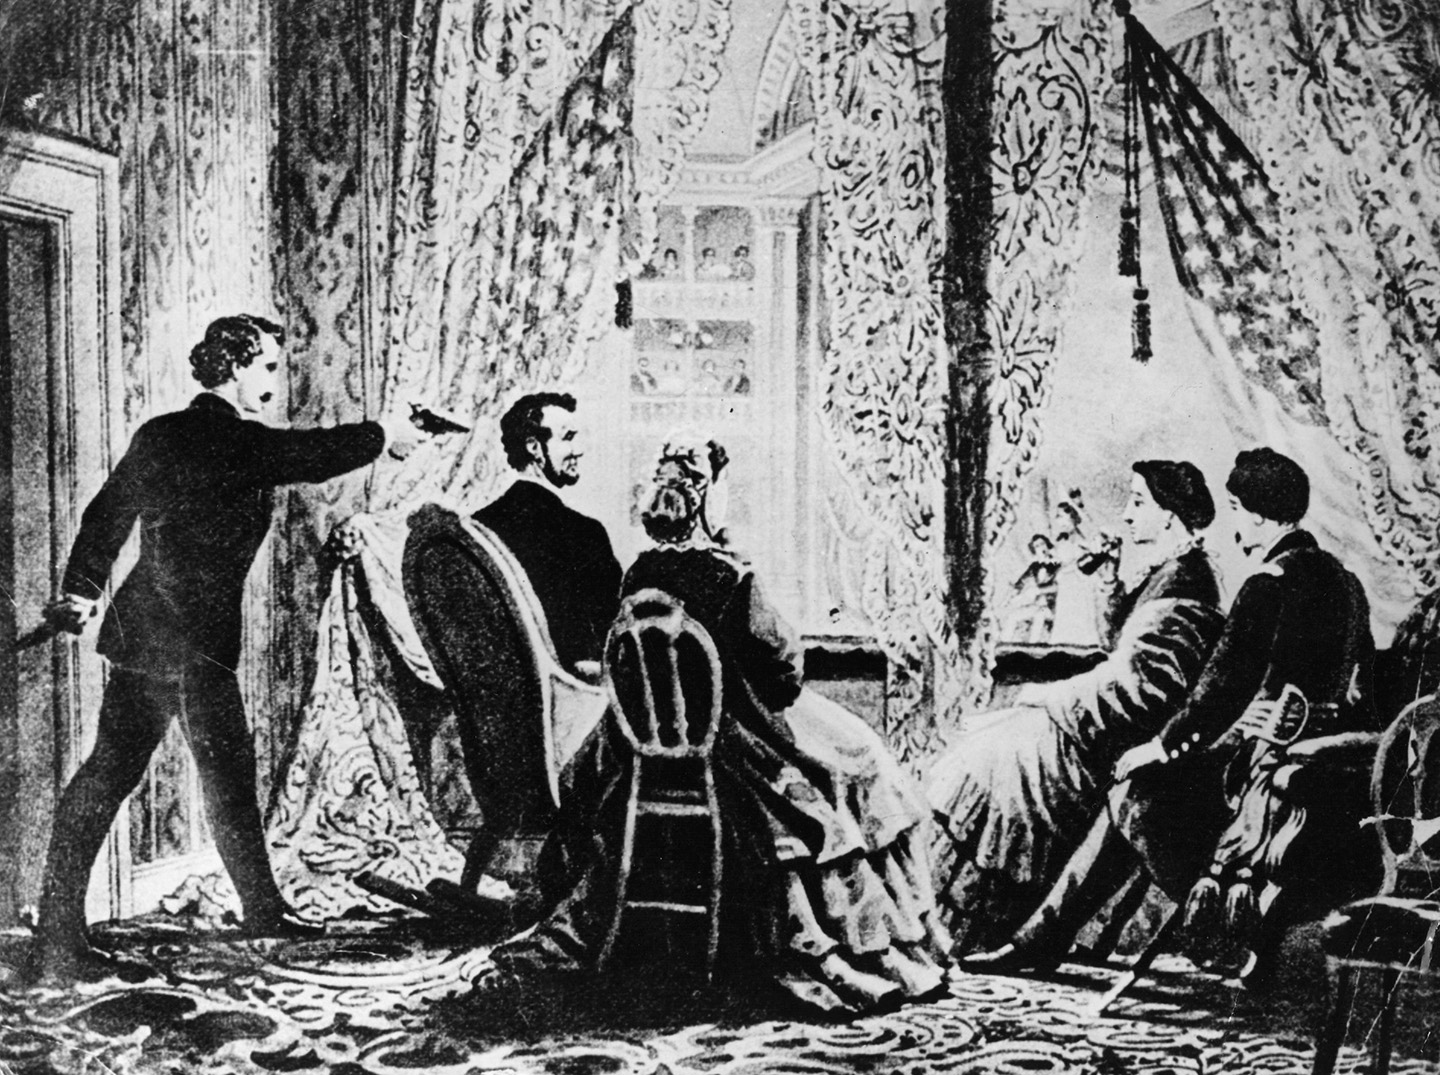 14th April 1865: The assassination of the 16th President of the United States, Abraham Lincoln by actor John Wilkes Booth at Ford's Theatre, Washington DC. (Hulton Archive/Getty Images)